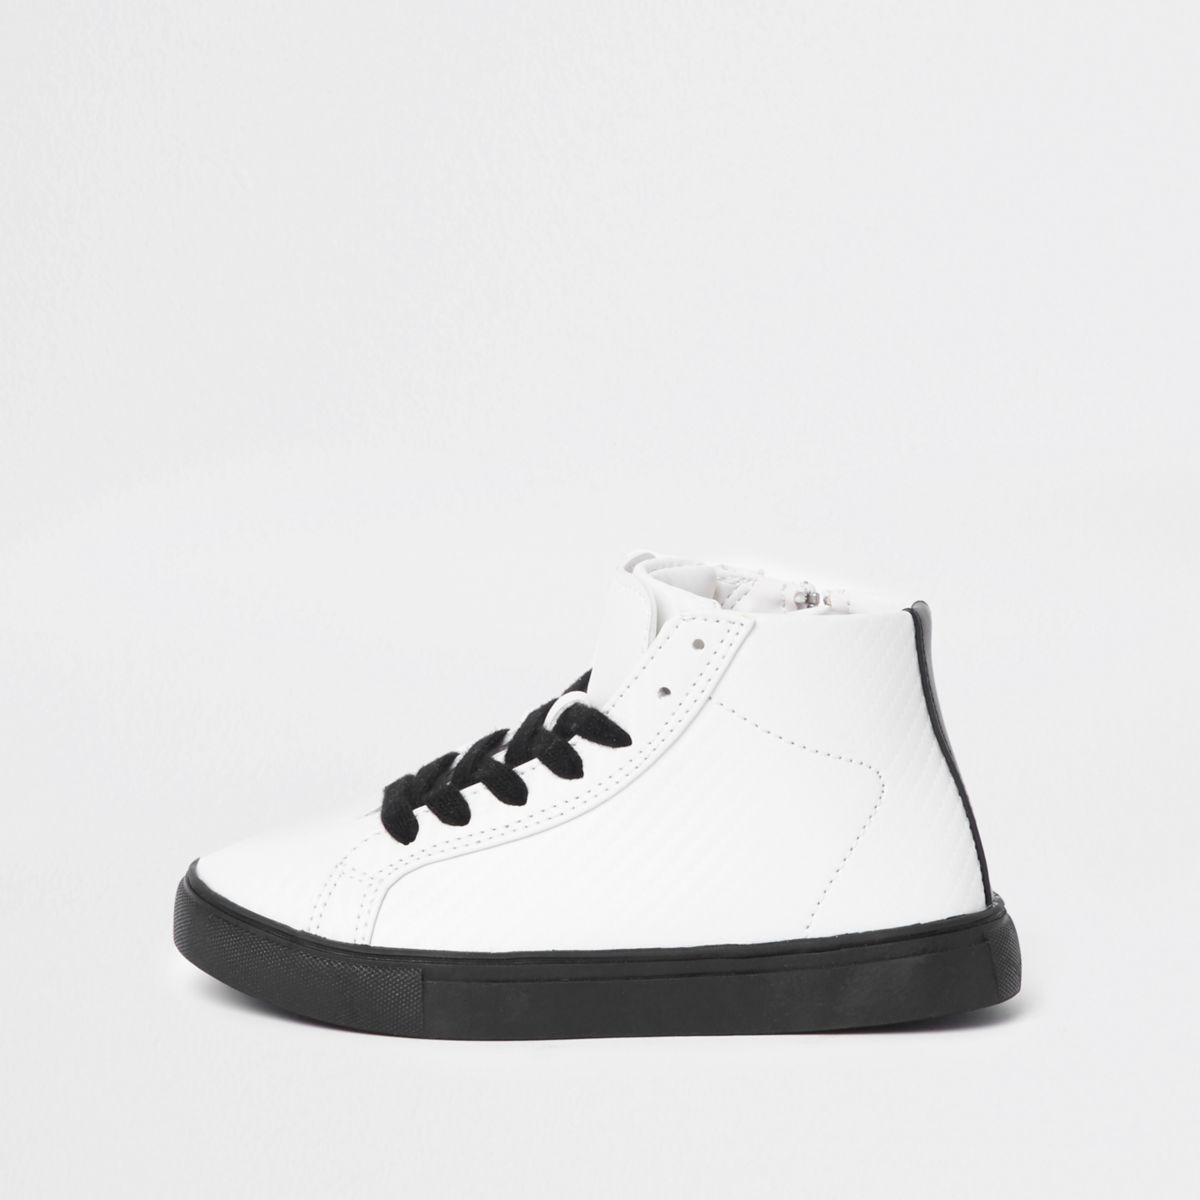 Boys white textured high top sneakers